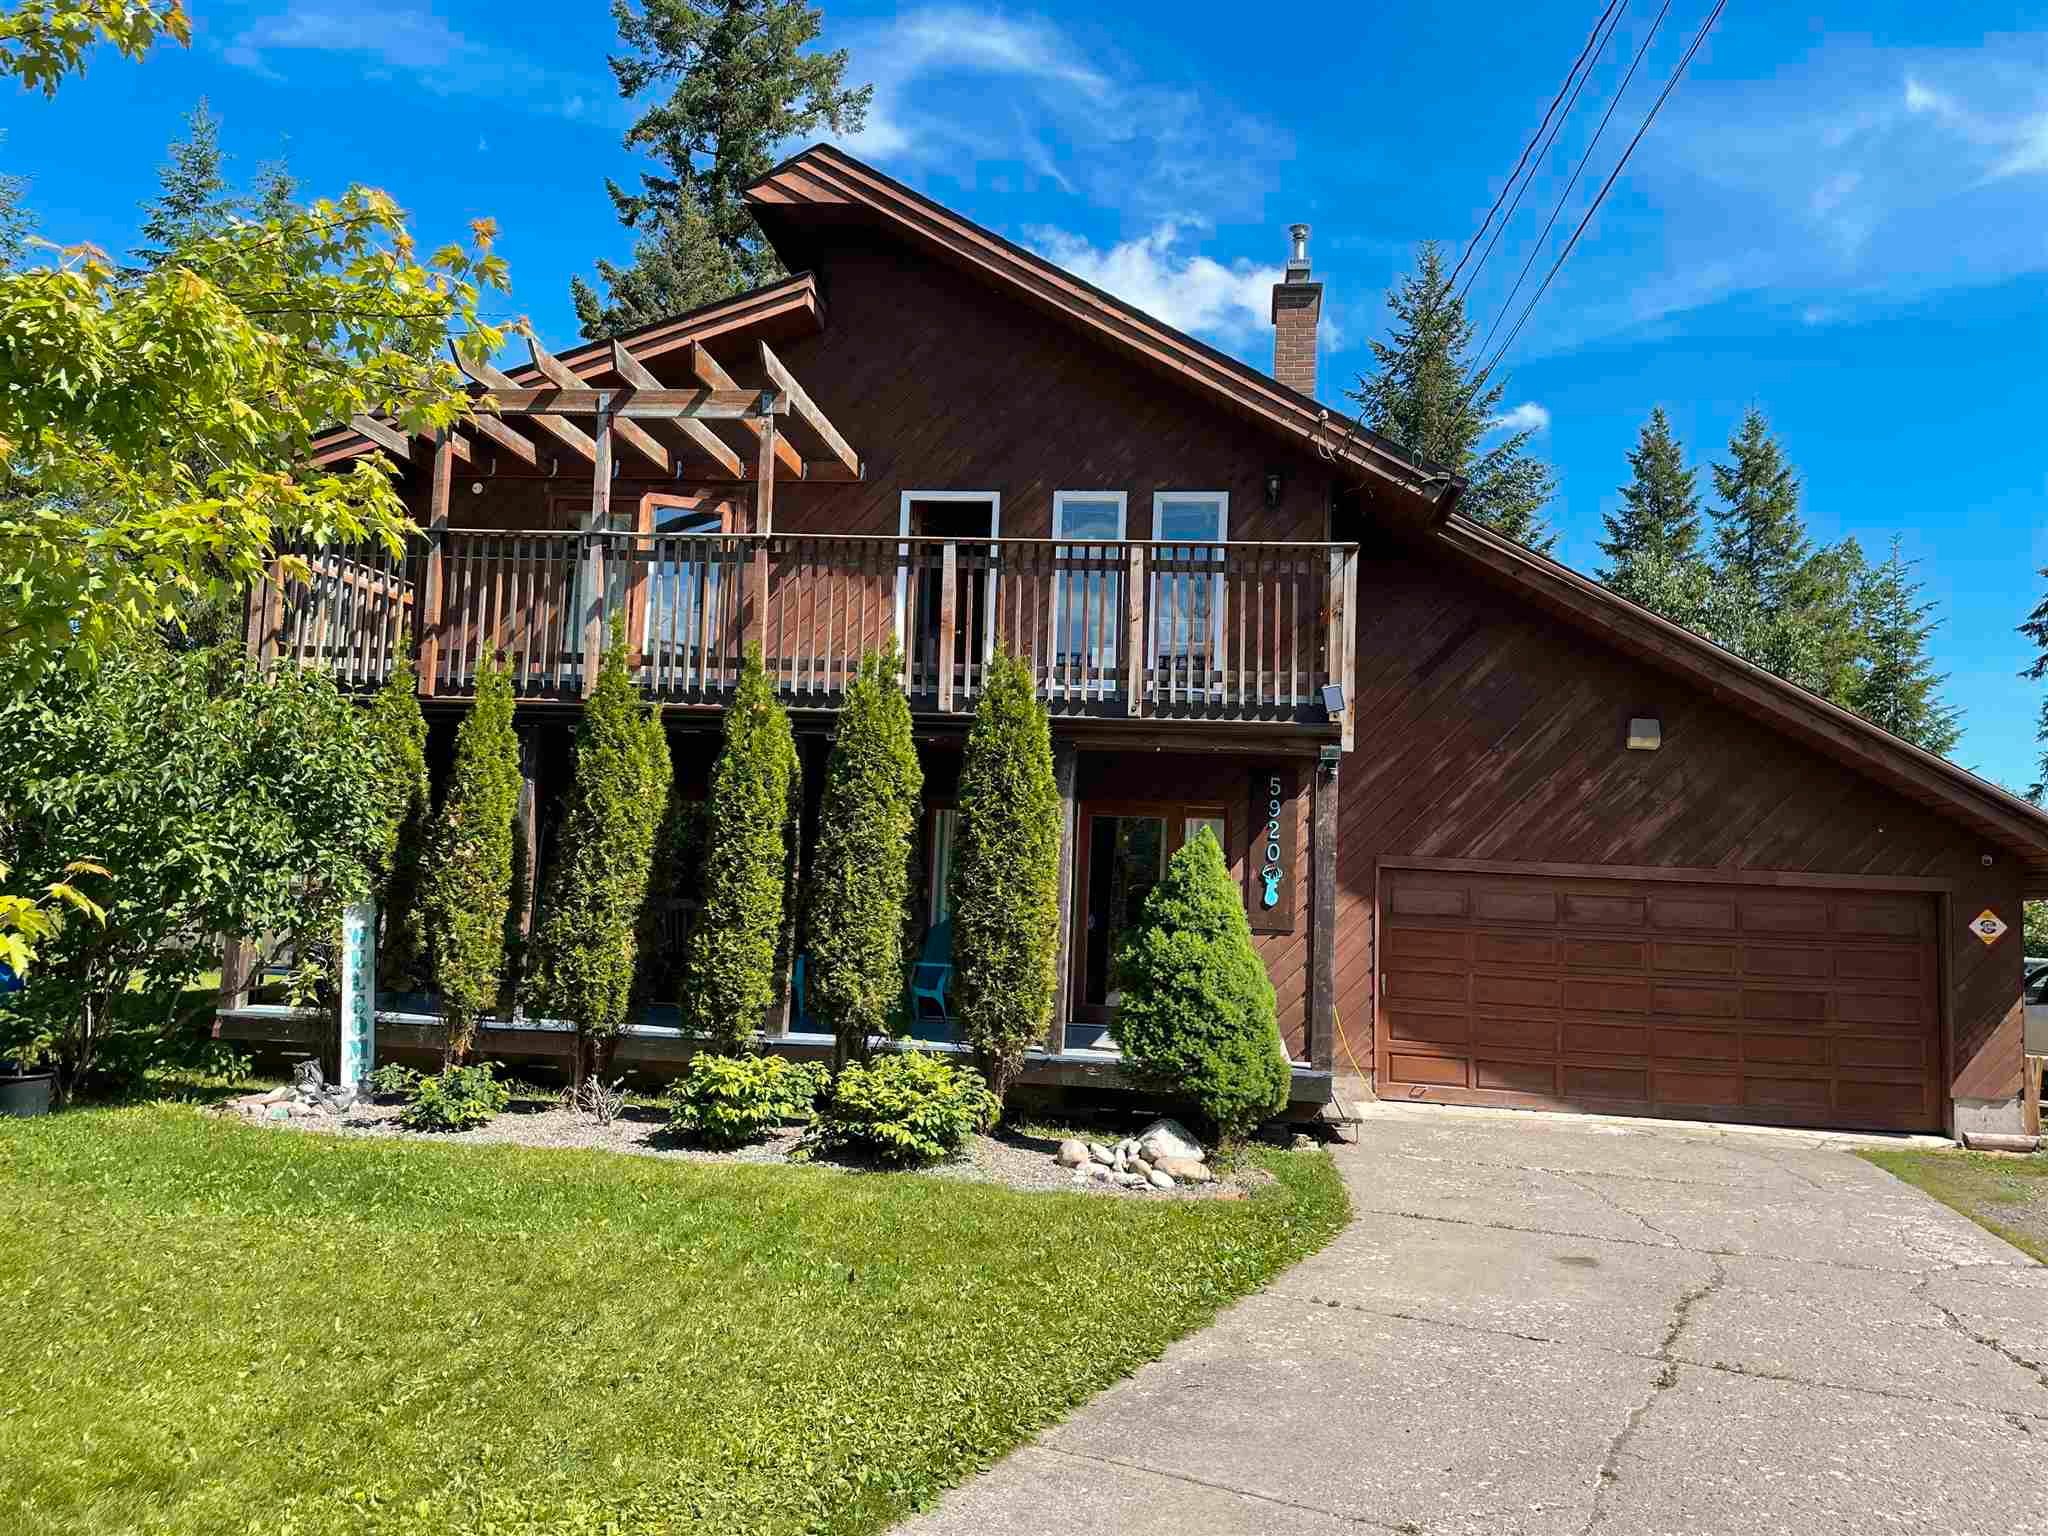 Main Photo: 5920 RIVERDALE Crescent in Prince George: Nechako Bench House for sale (PG City North (Zone 73))  : MLS®# R2604013